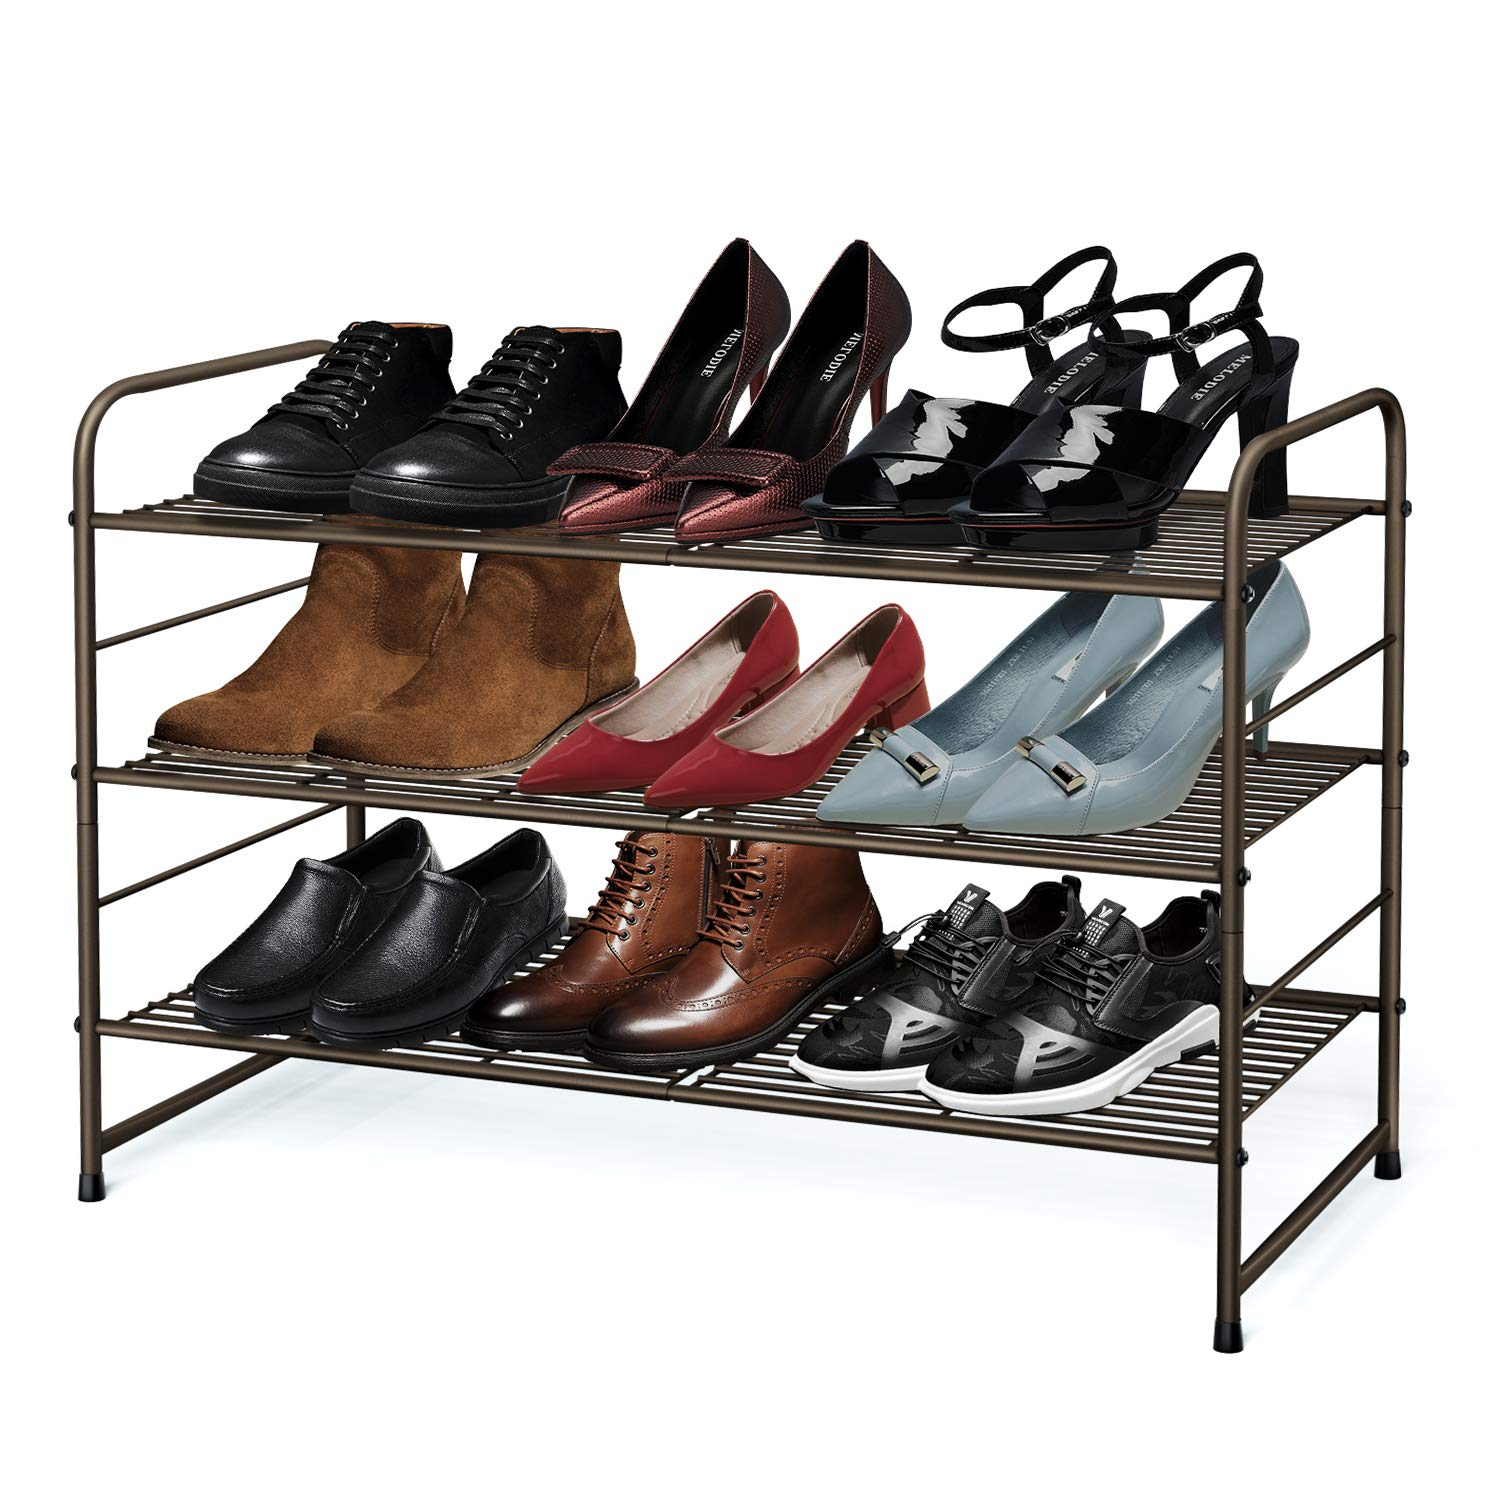 Simple Trending 3-Tier Stackable Shoe Rack, Expandable & Adjustable Shoe Shelf Storage Organizer, Wire Grid, Bronze